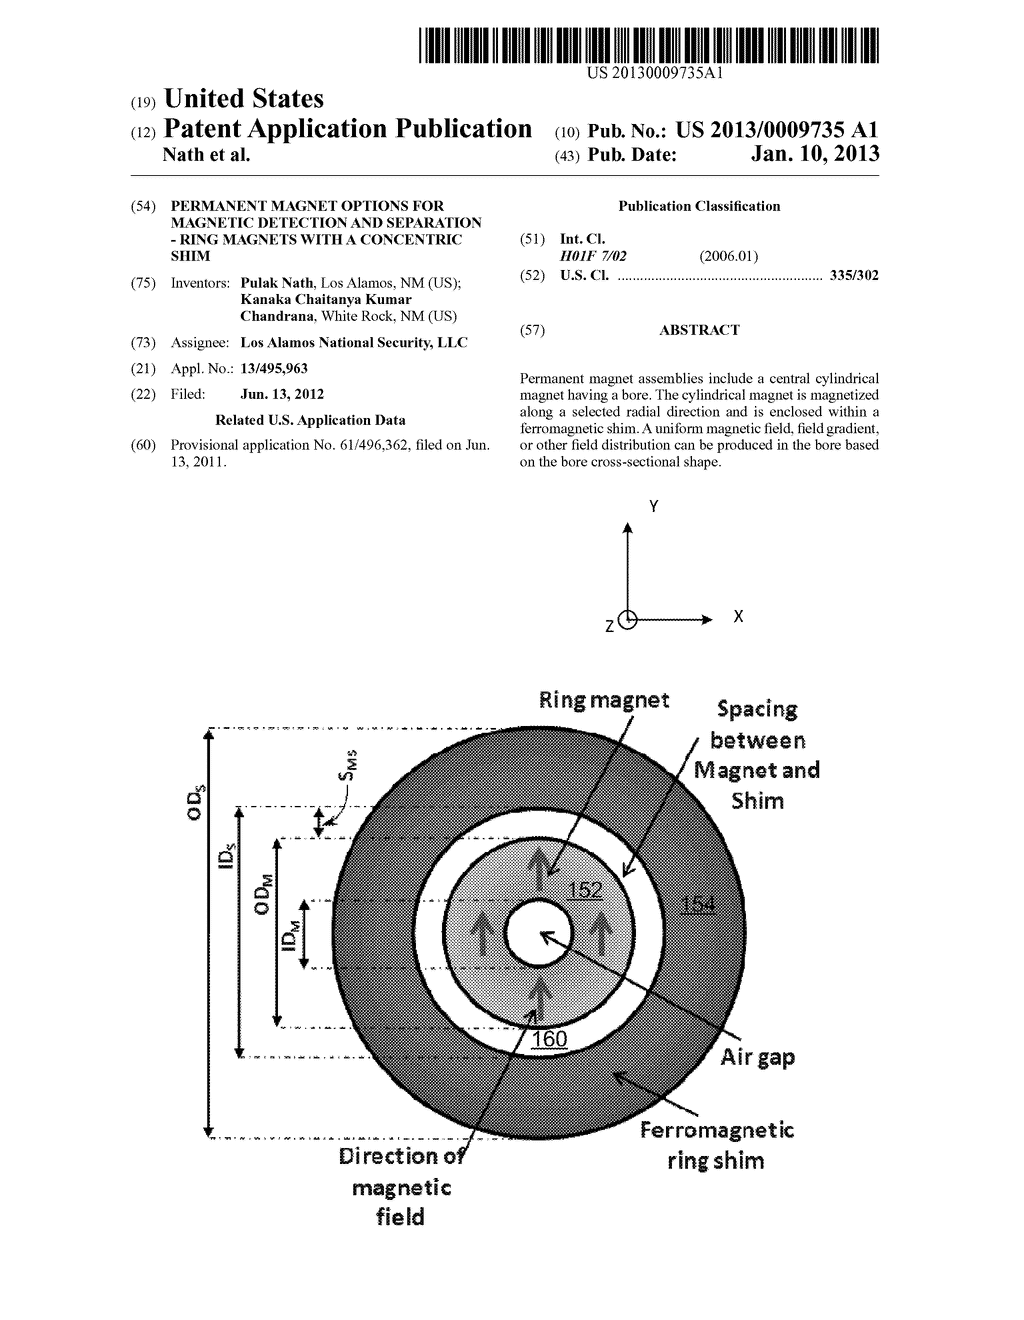 PERMANENT MAGNET OPTIONS FOR MAGNETIC DETECTION AND SEPARATION - RING     MAGNETS WITH A CONCENTRIC SHIM - diagram, schematic, and image 01